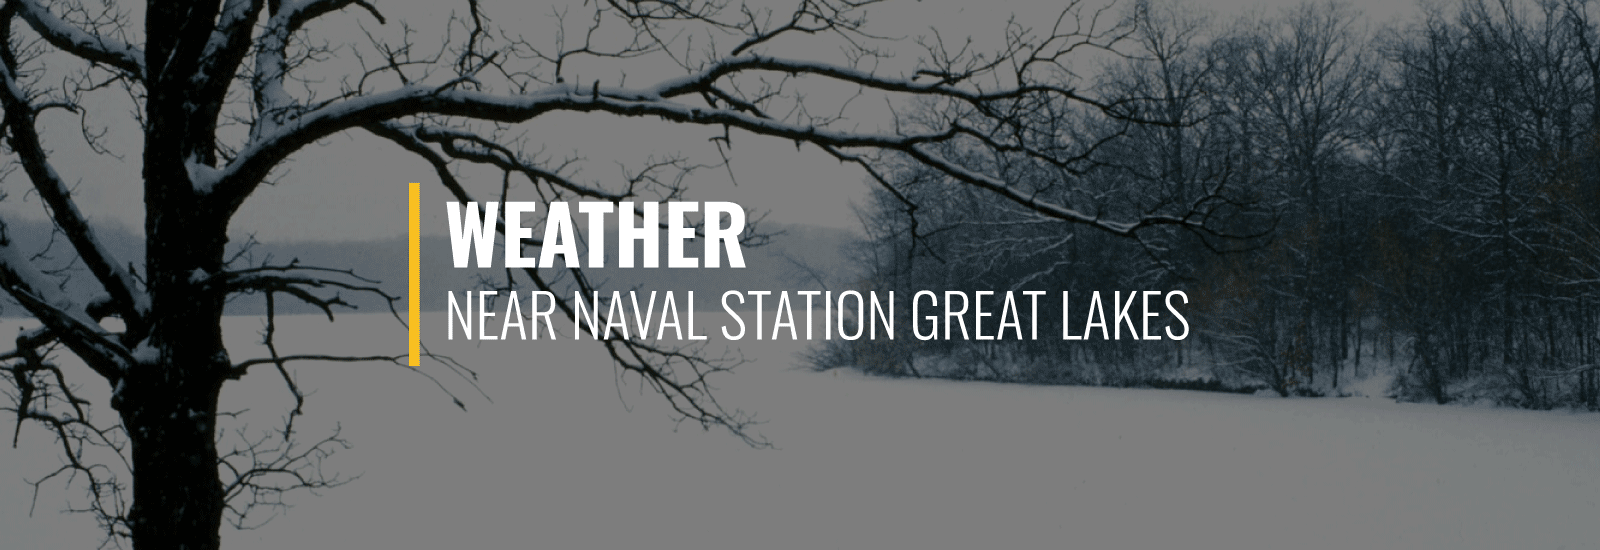 Naval Station Great Lakes Weather